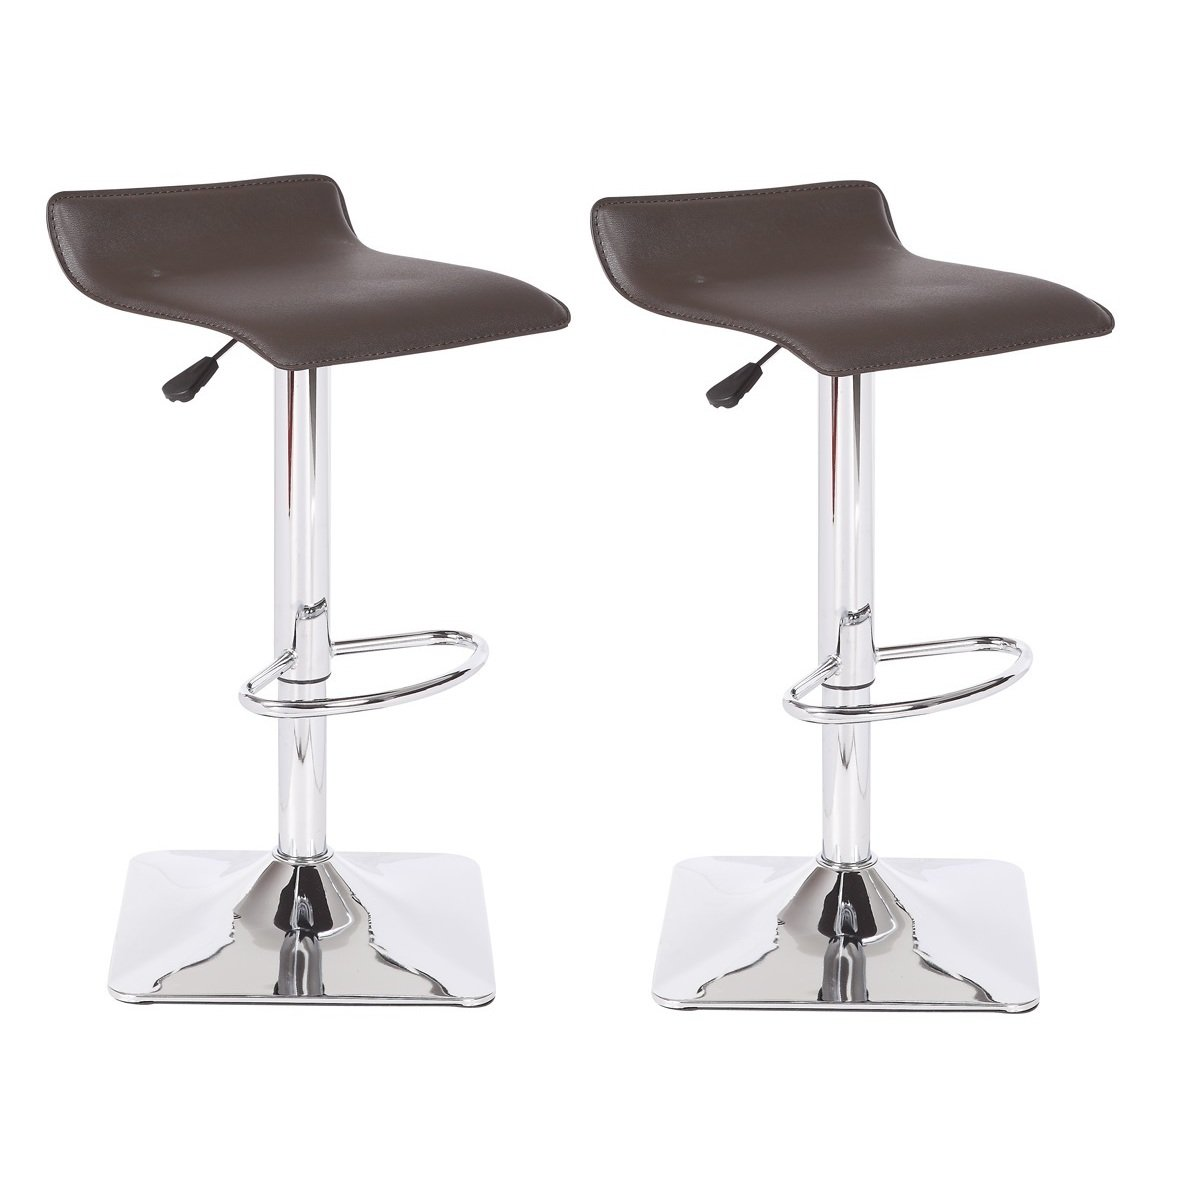 US Pride Furniture Dylan Adjustable Swivel Bar Stool Set of 2